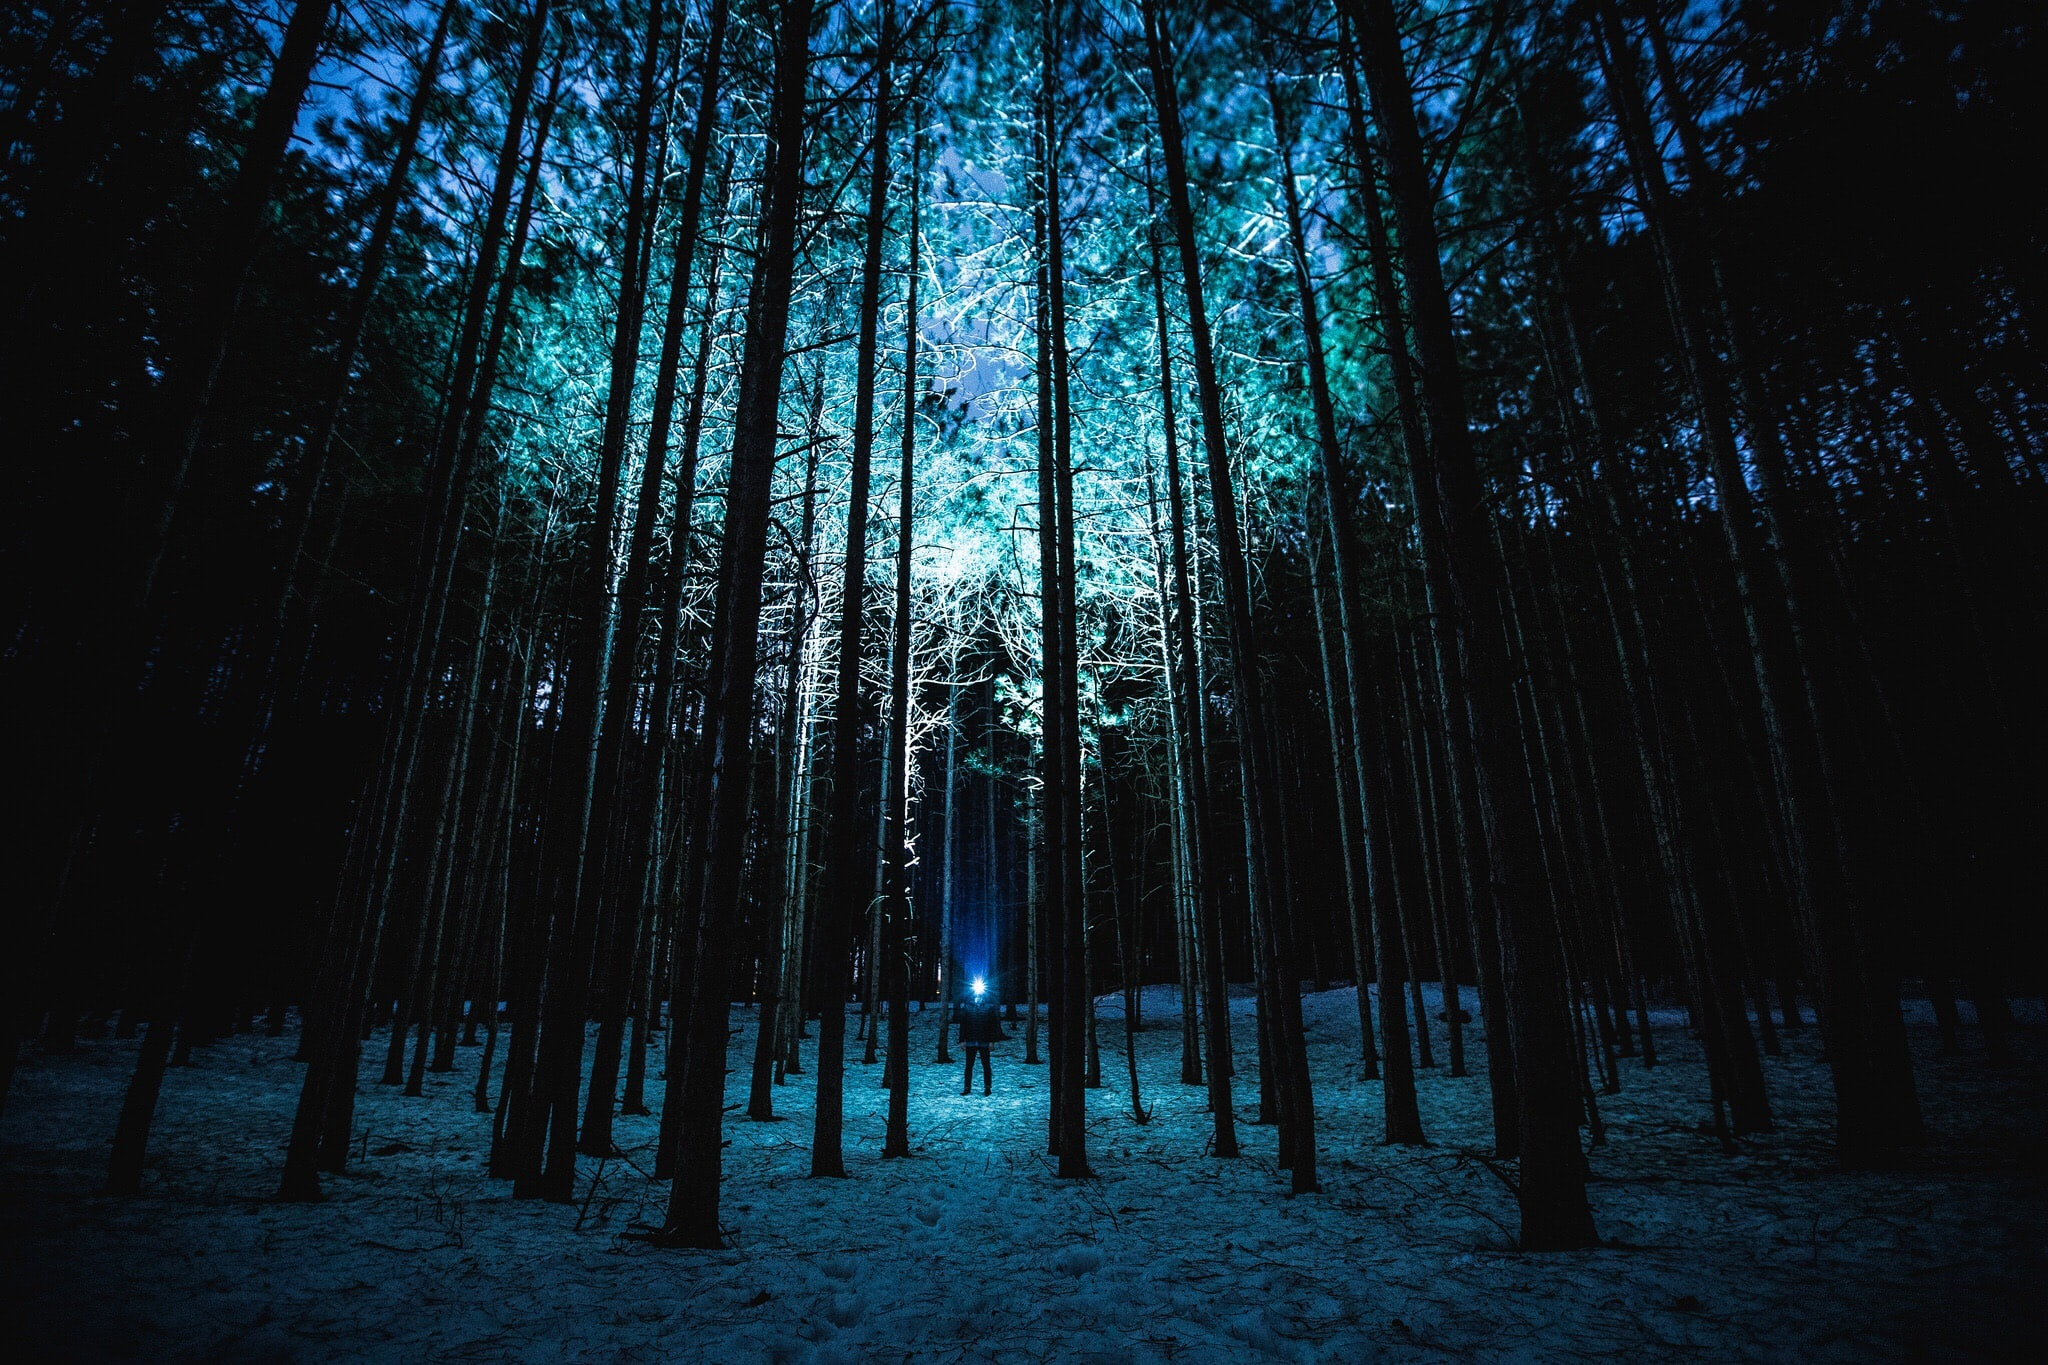 person standing in the middle of the forest